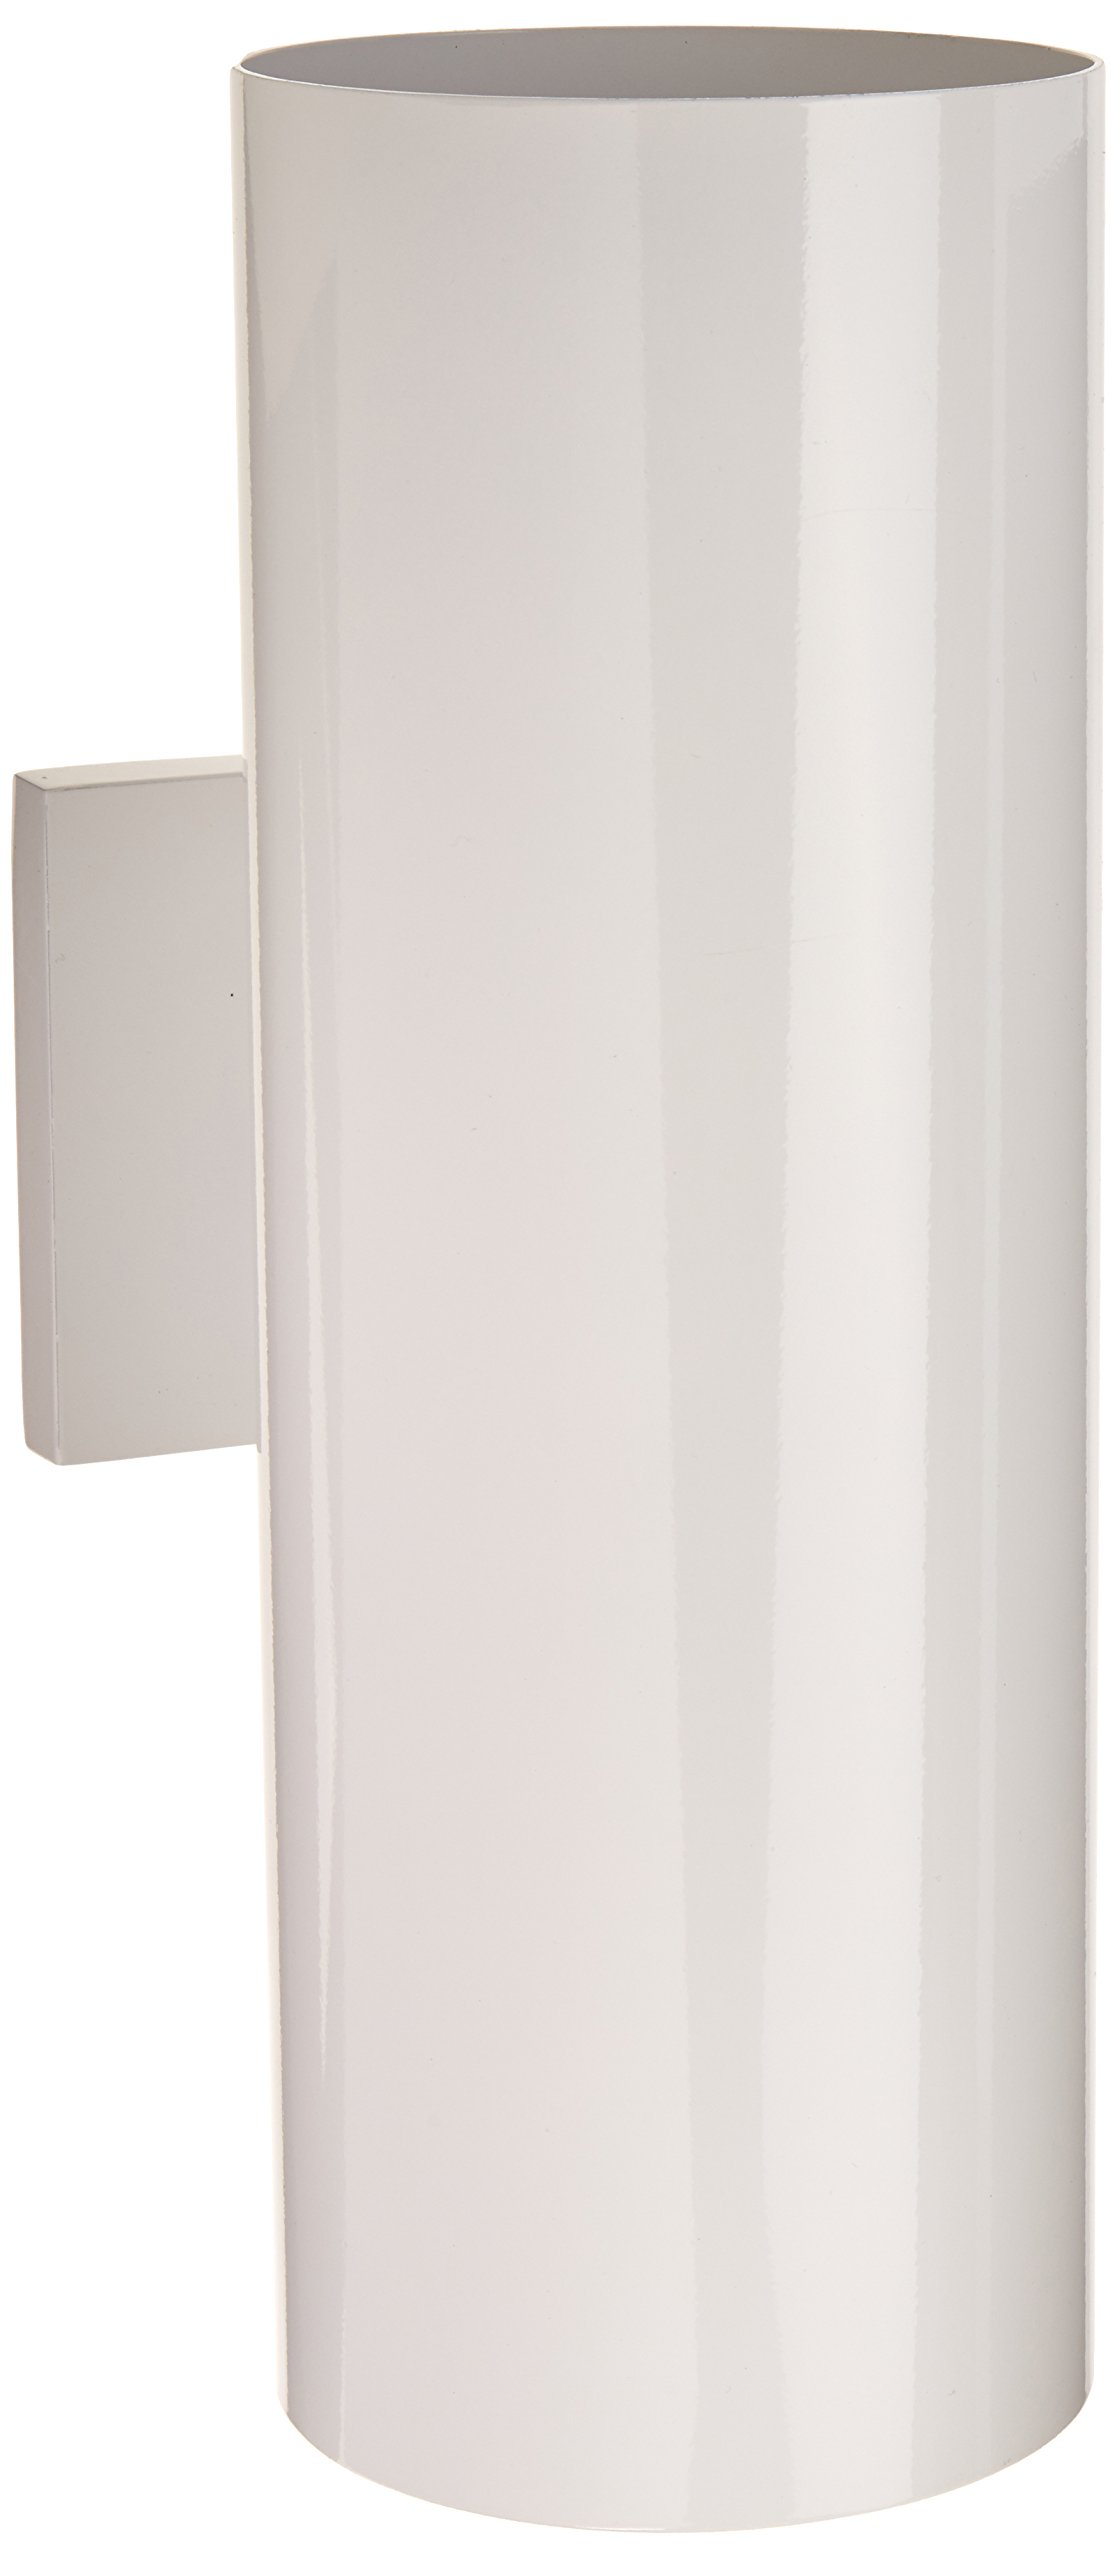 Progress Lighting P5675-30 5-Inch Up/Down Cylinder with Heavy Duty Aluminum Construction and Die Cast Wall Bracket Powder Coated Finish UL Listed For Wet Locations, White